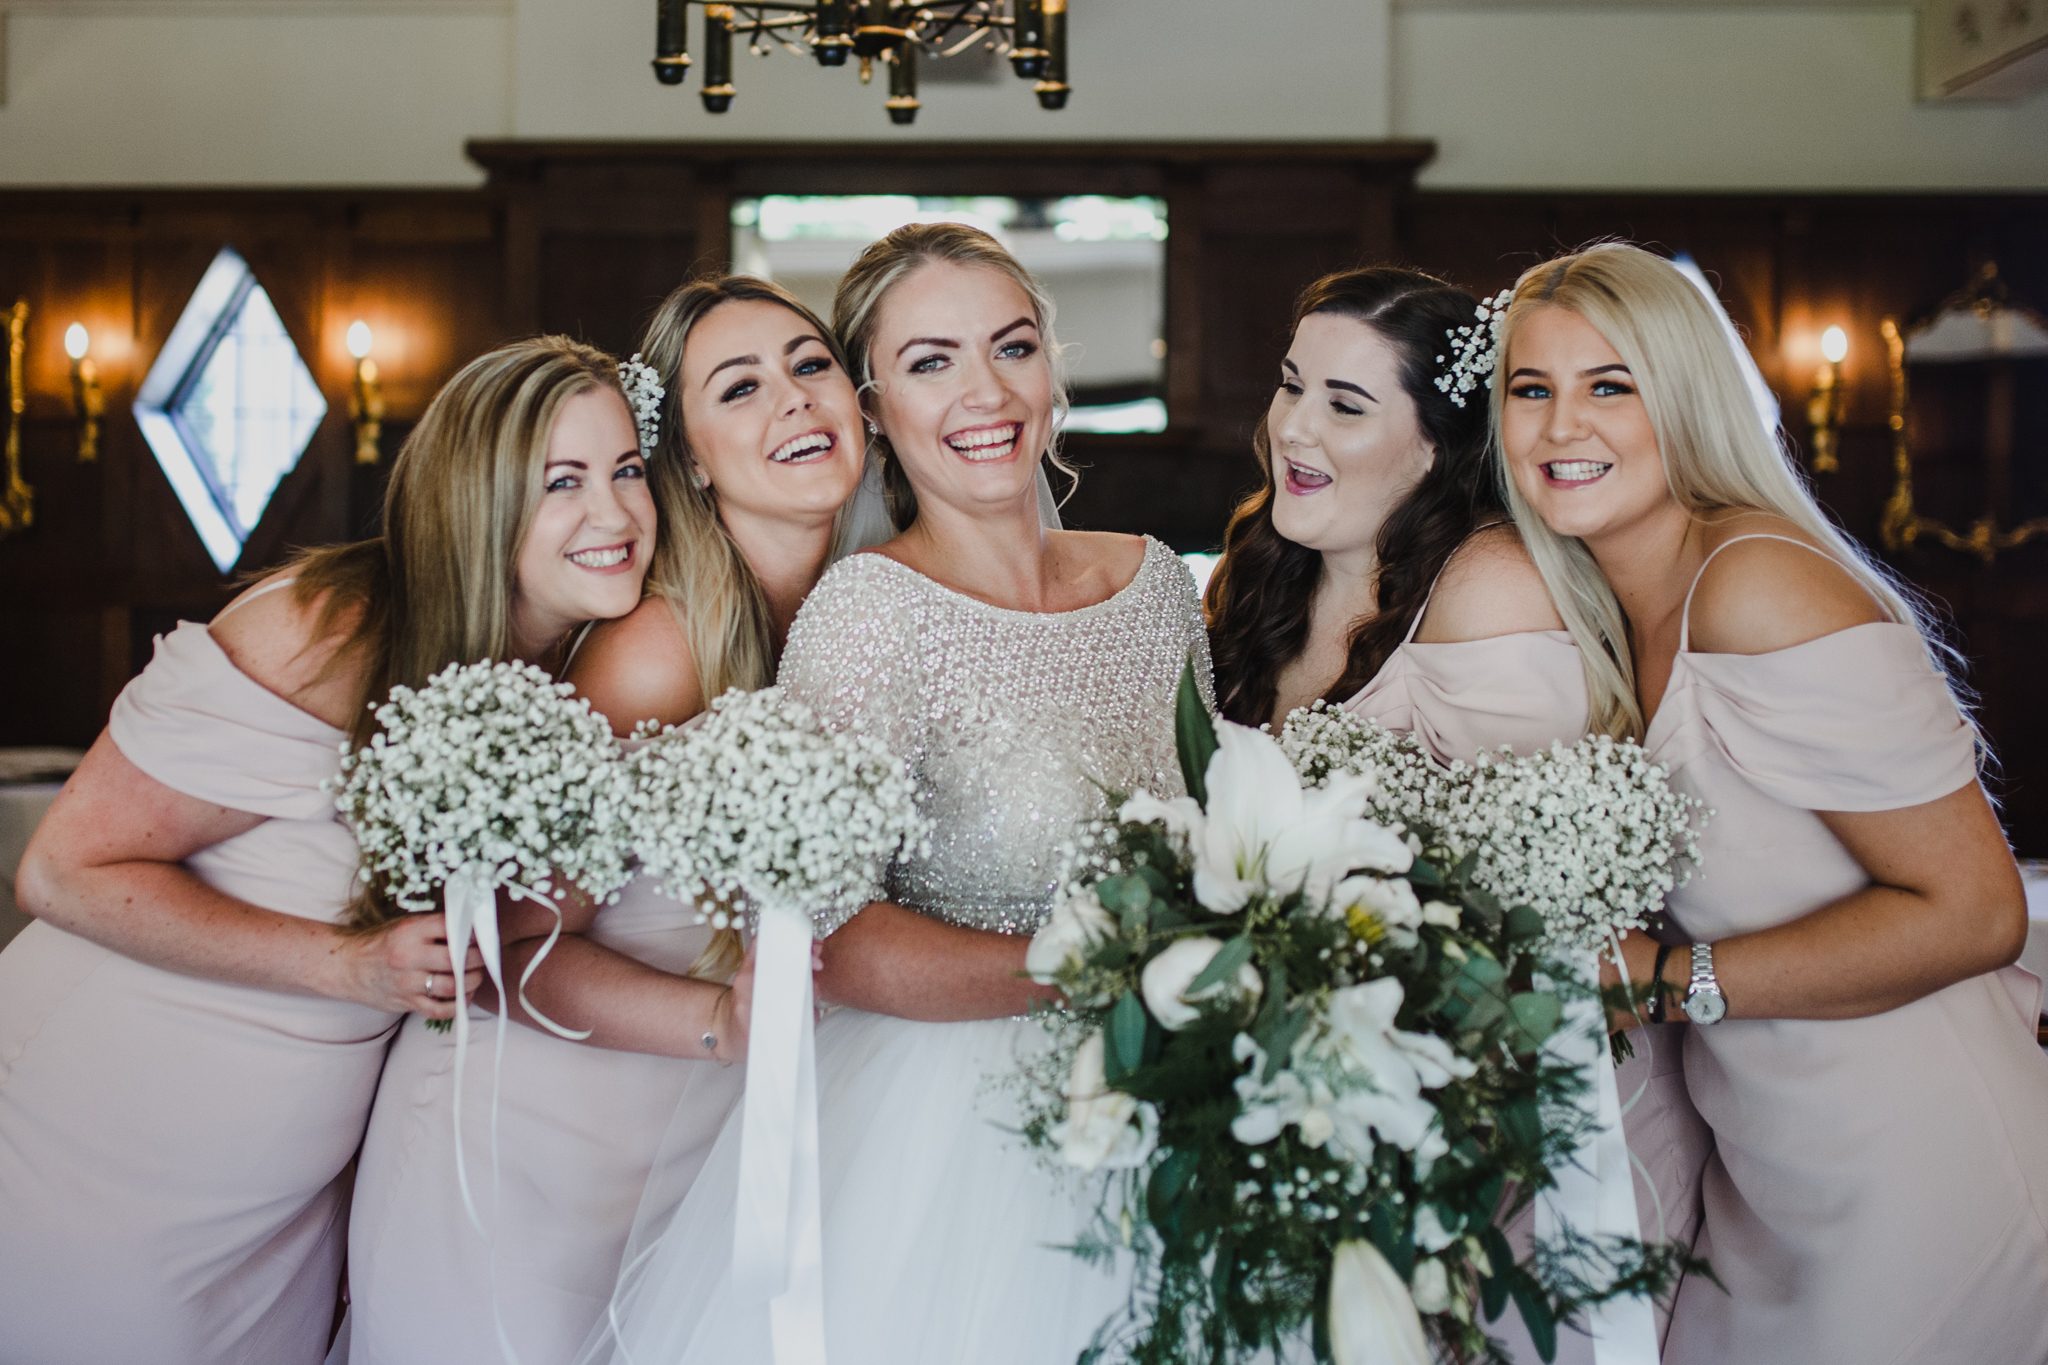 bride and her bridesmaids laughing together before a wedding